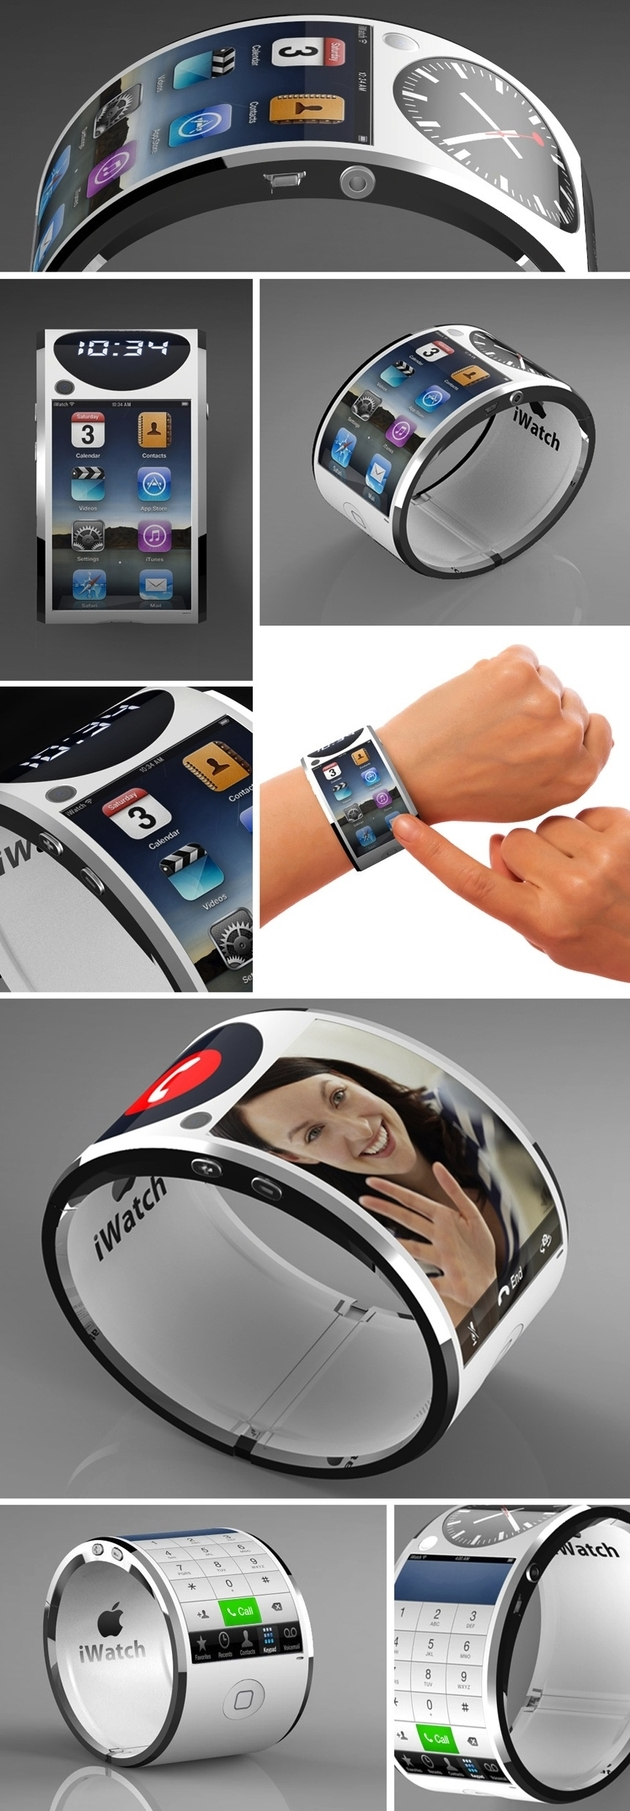 iWatch-product-concept